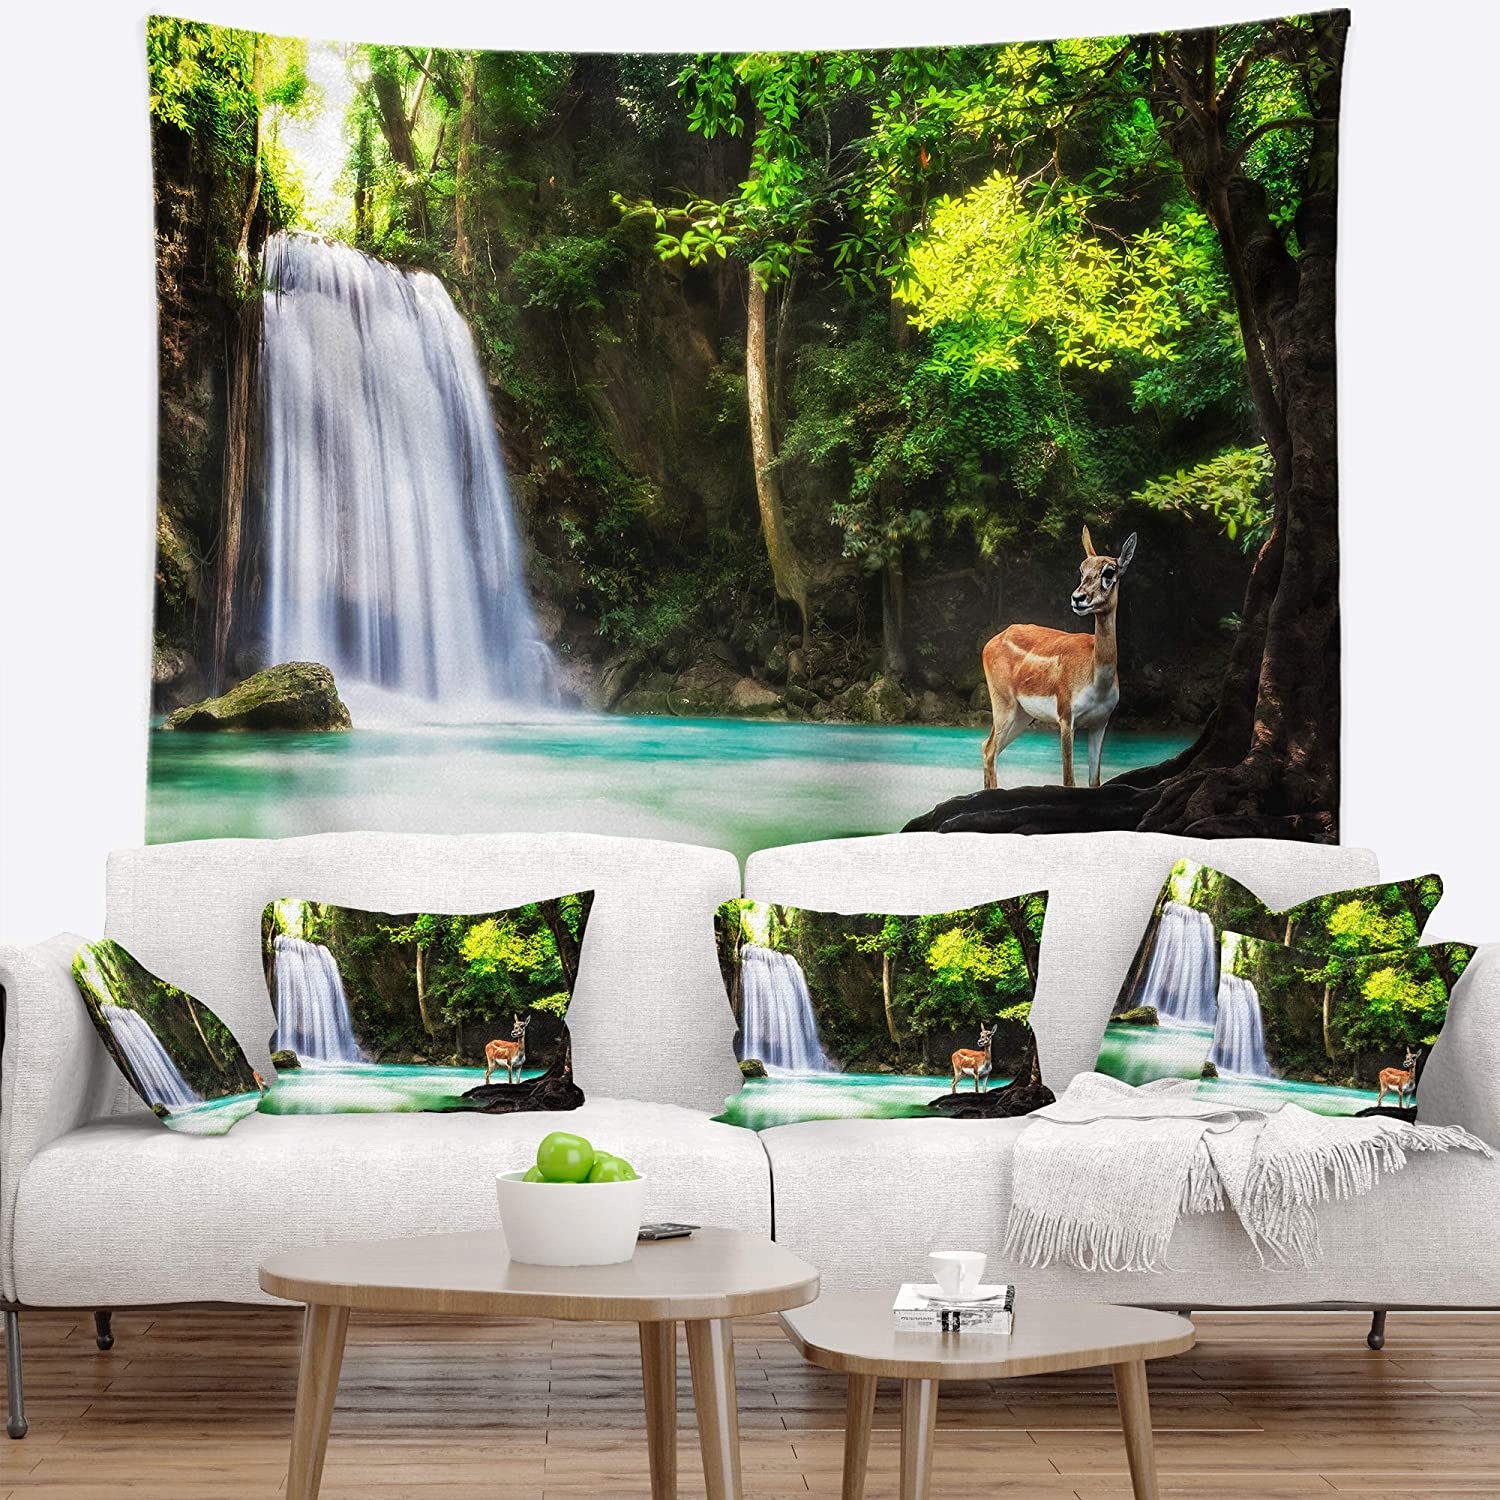 Tapestries Home Kitchen Created On Lightweight Polyester Fabric 80 In Designart Tap6431 80 68 Erawan Waterfall Landscape Photo Blanket Décor Art For Home And Office Wall Tapestry X Large X 68 In